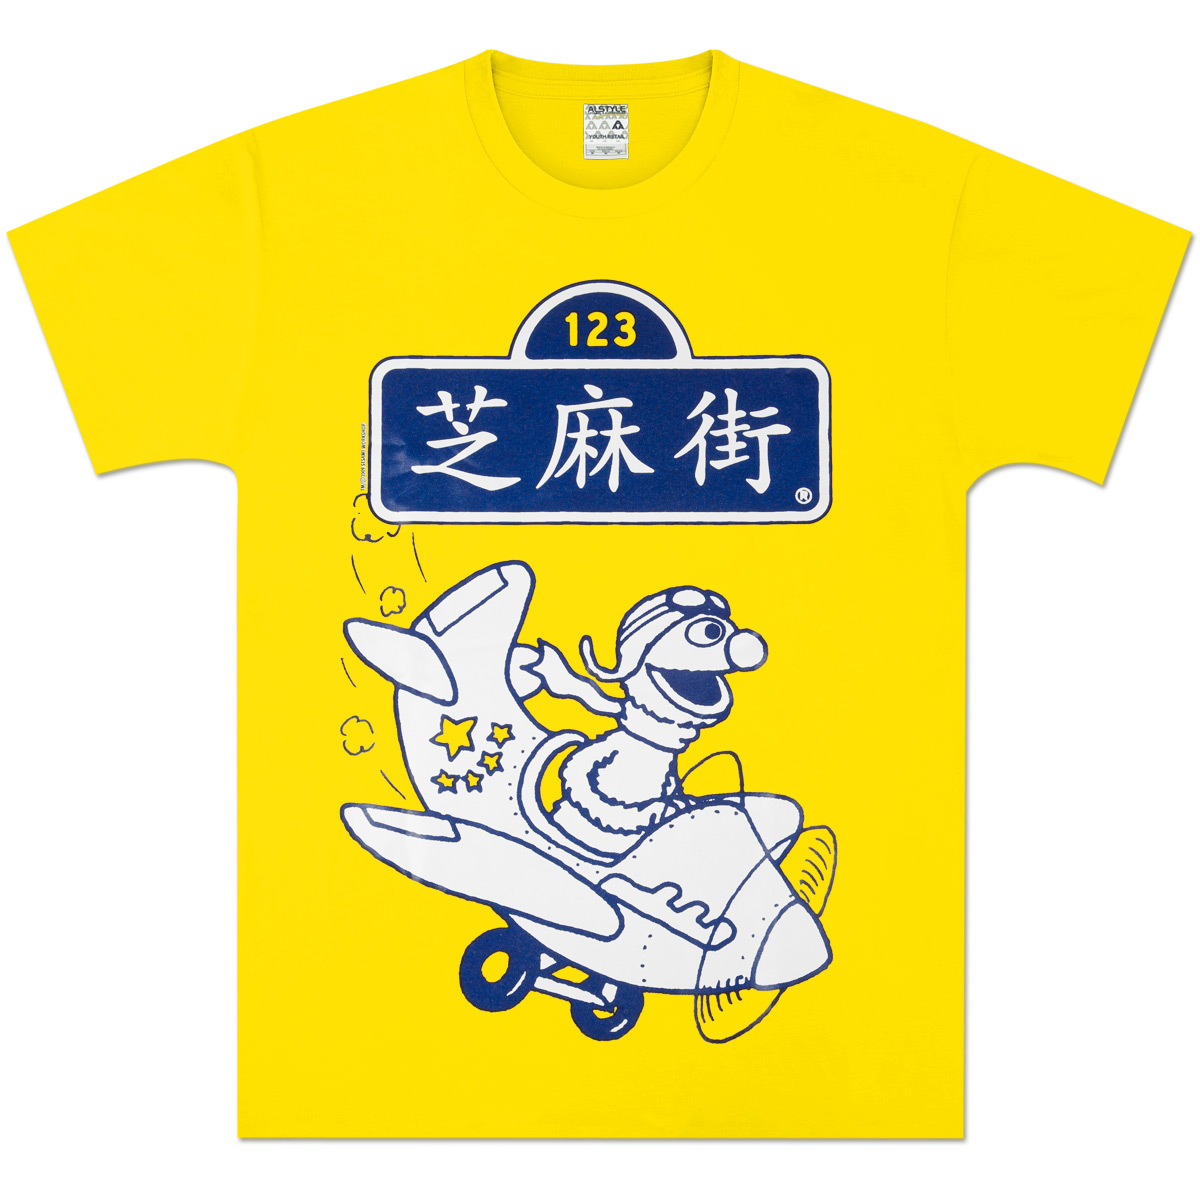 Chinese Grover T-shirt